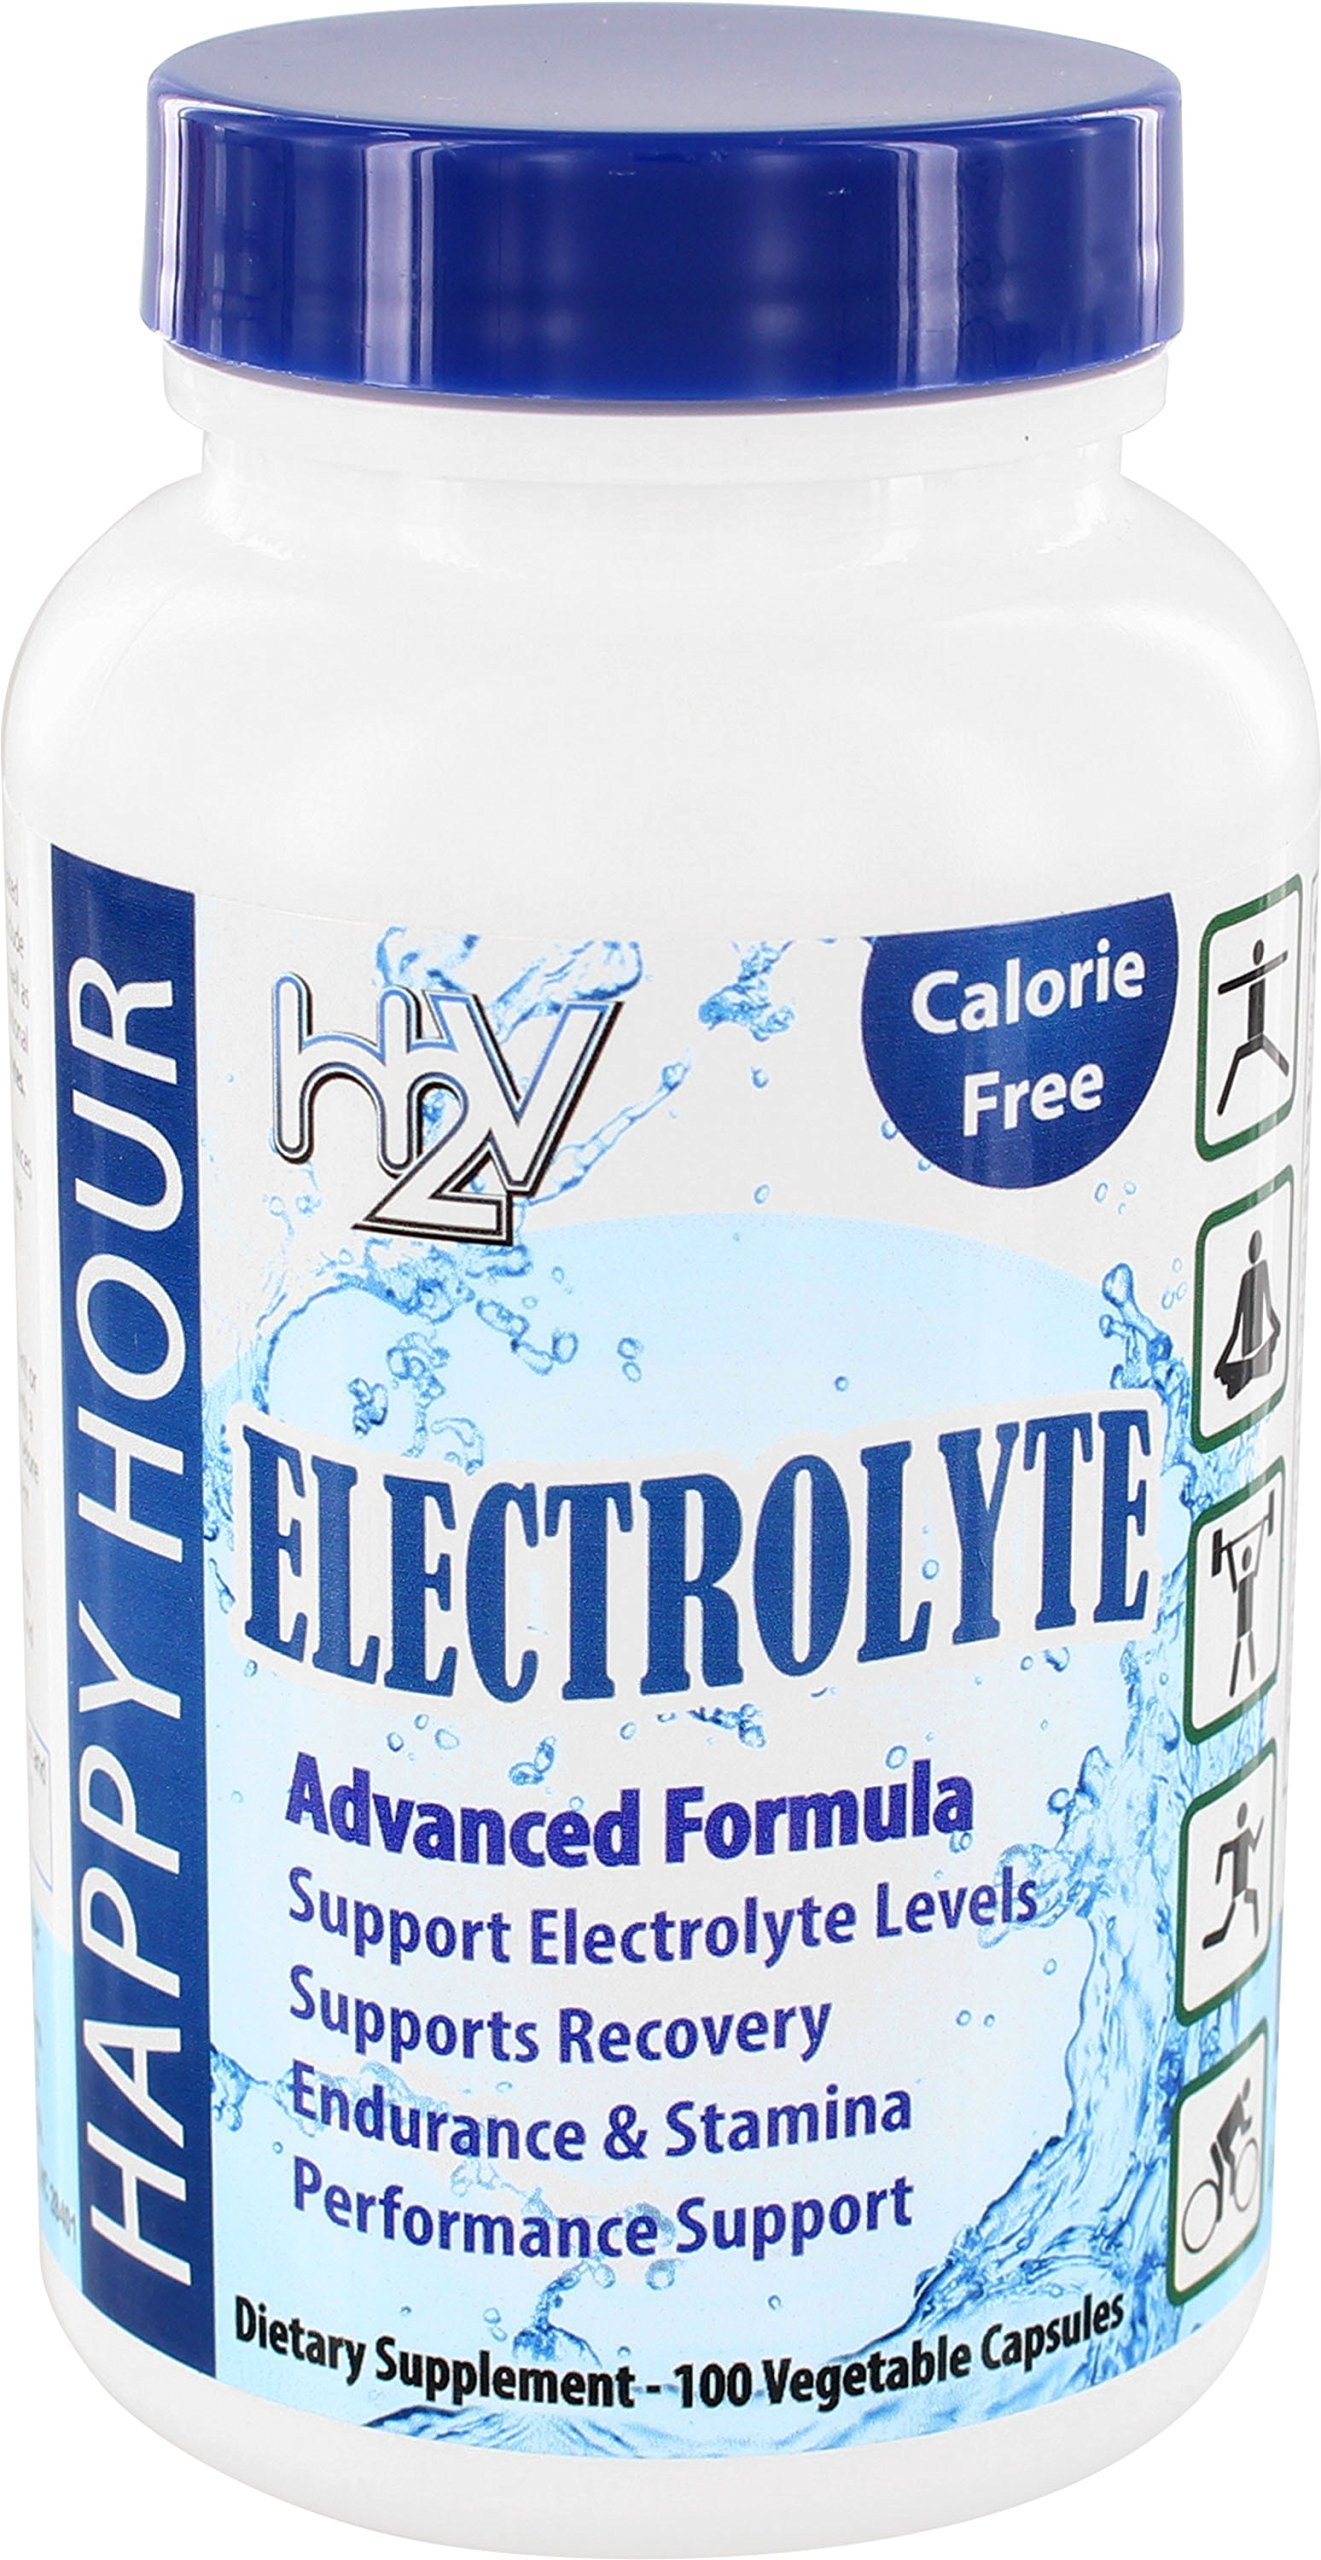 Electrolyte Pills– Helping w/Dehydration, Muscle cramping, Performance & Rapid Recovery. Vegetarian Capsules with Magnesium, Potassium, Sodium & Calcium from Happy Hour Vitamins